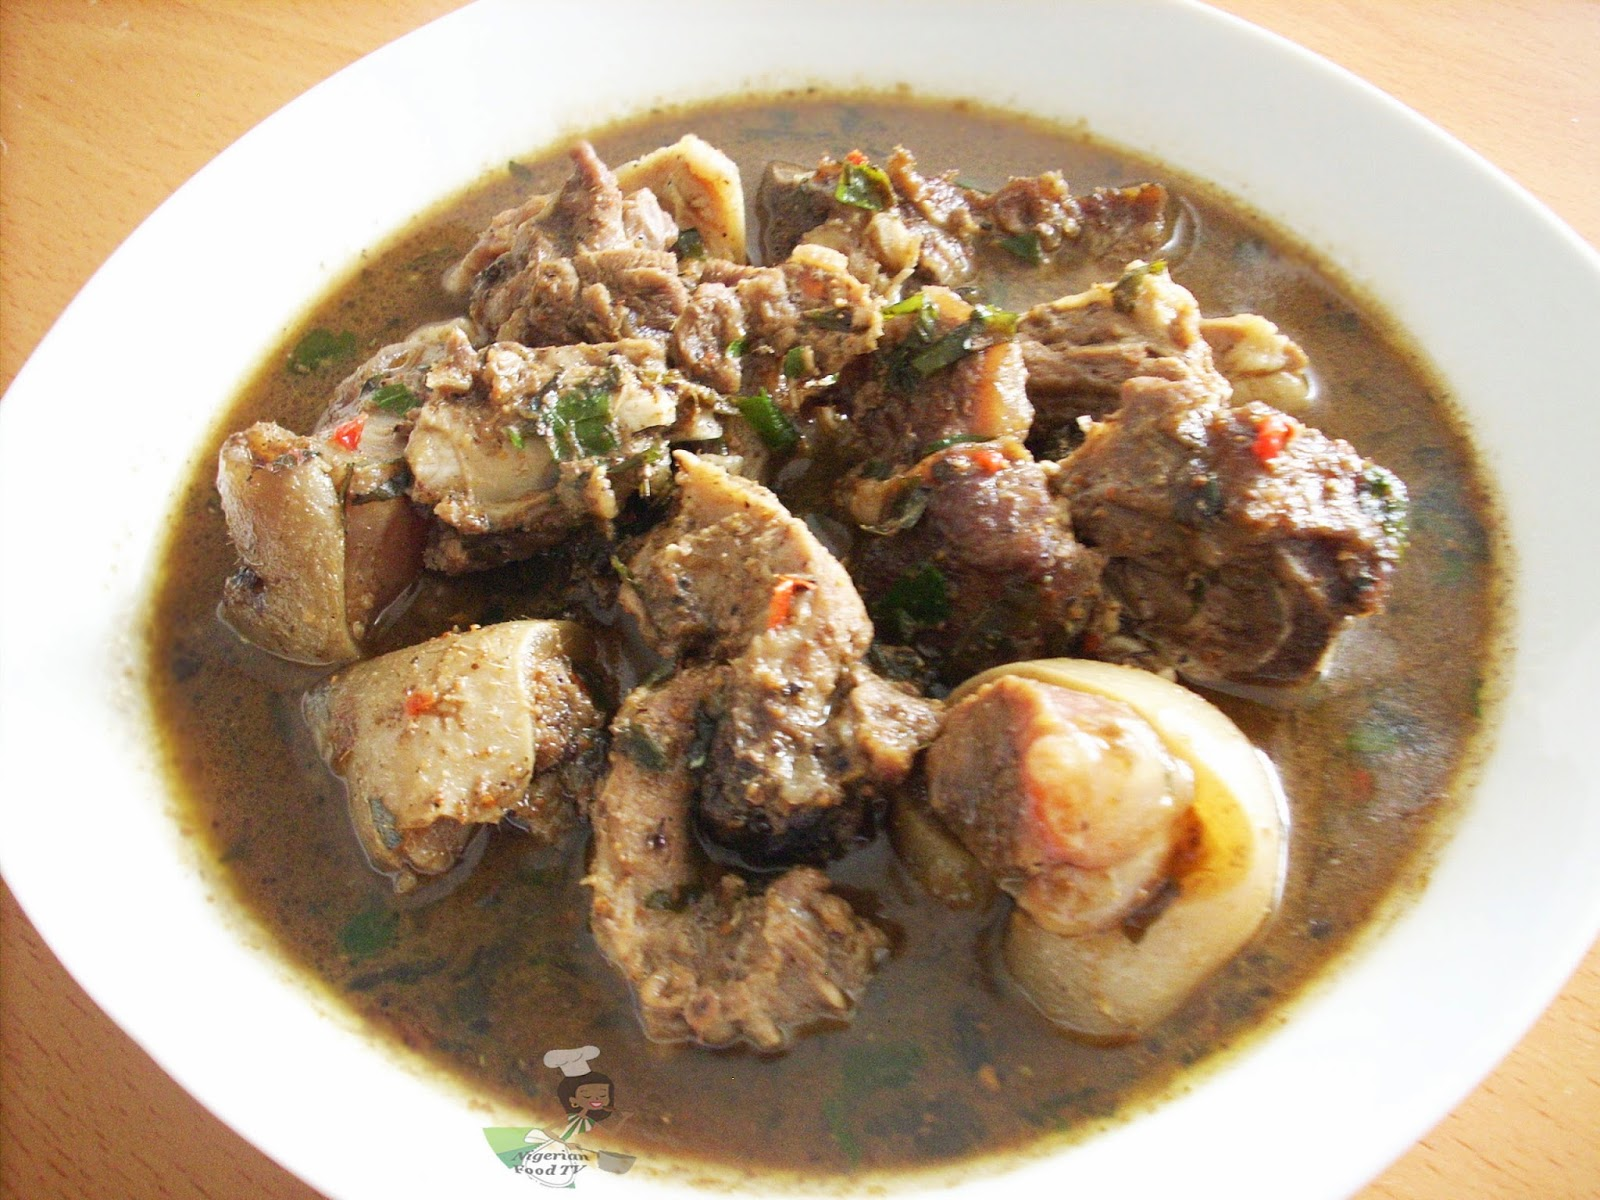 Nigerian soup recipes,Nigerian soup recipes, nigerian stew recipes,nigerian stew recipe,nigerian goat meat peppersoup